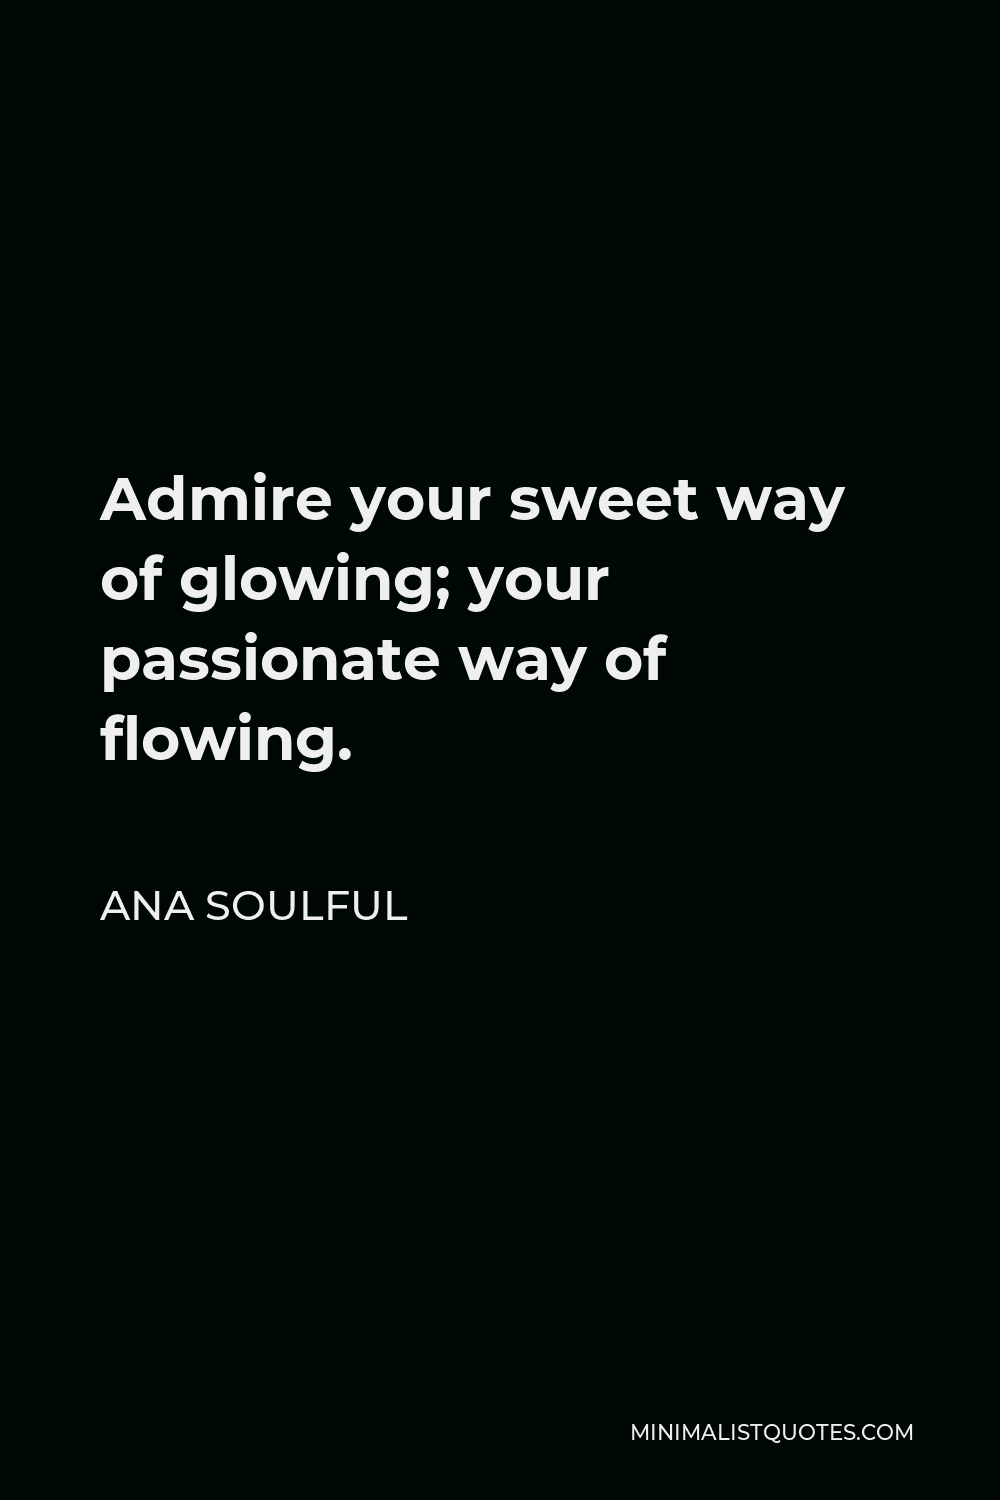 Ana Soulful Quote - Admire your sweet way of glowing; your passionate way of flowing.